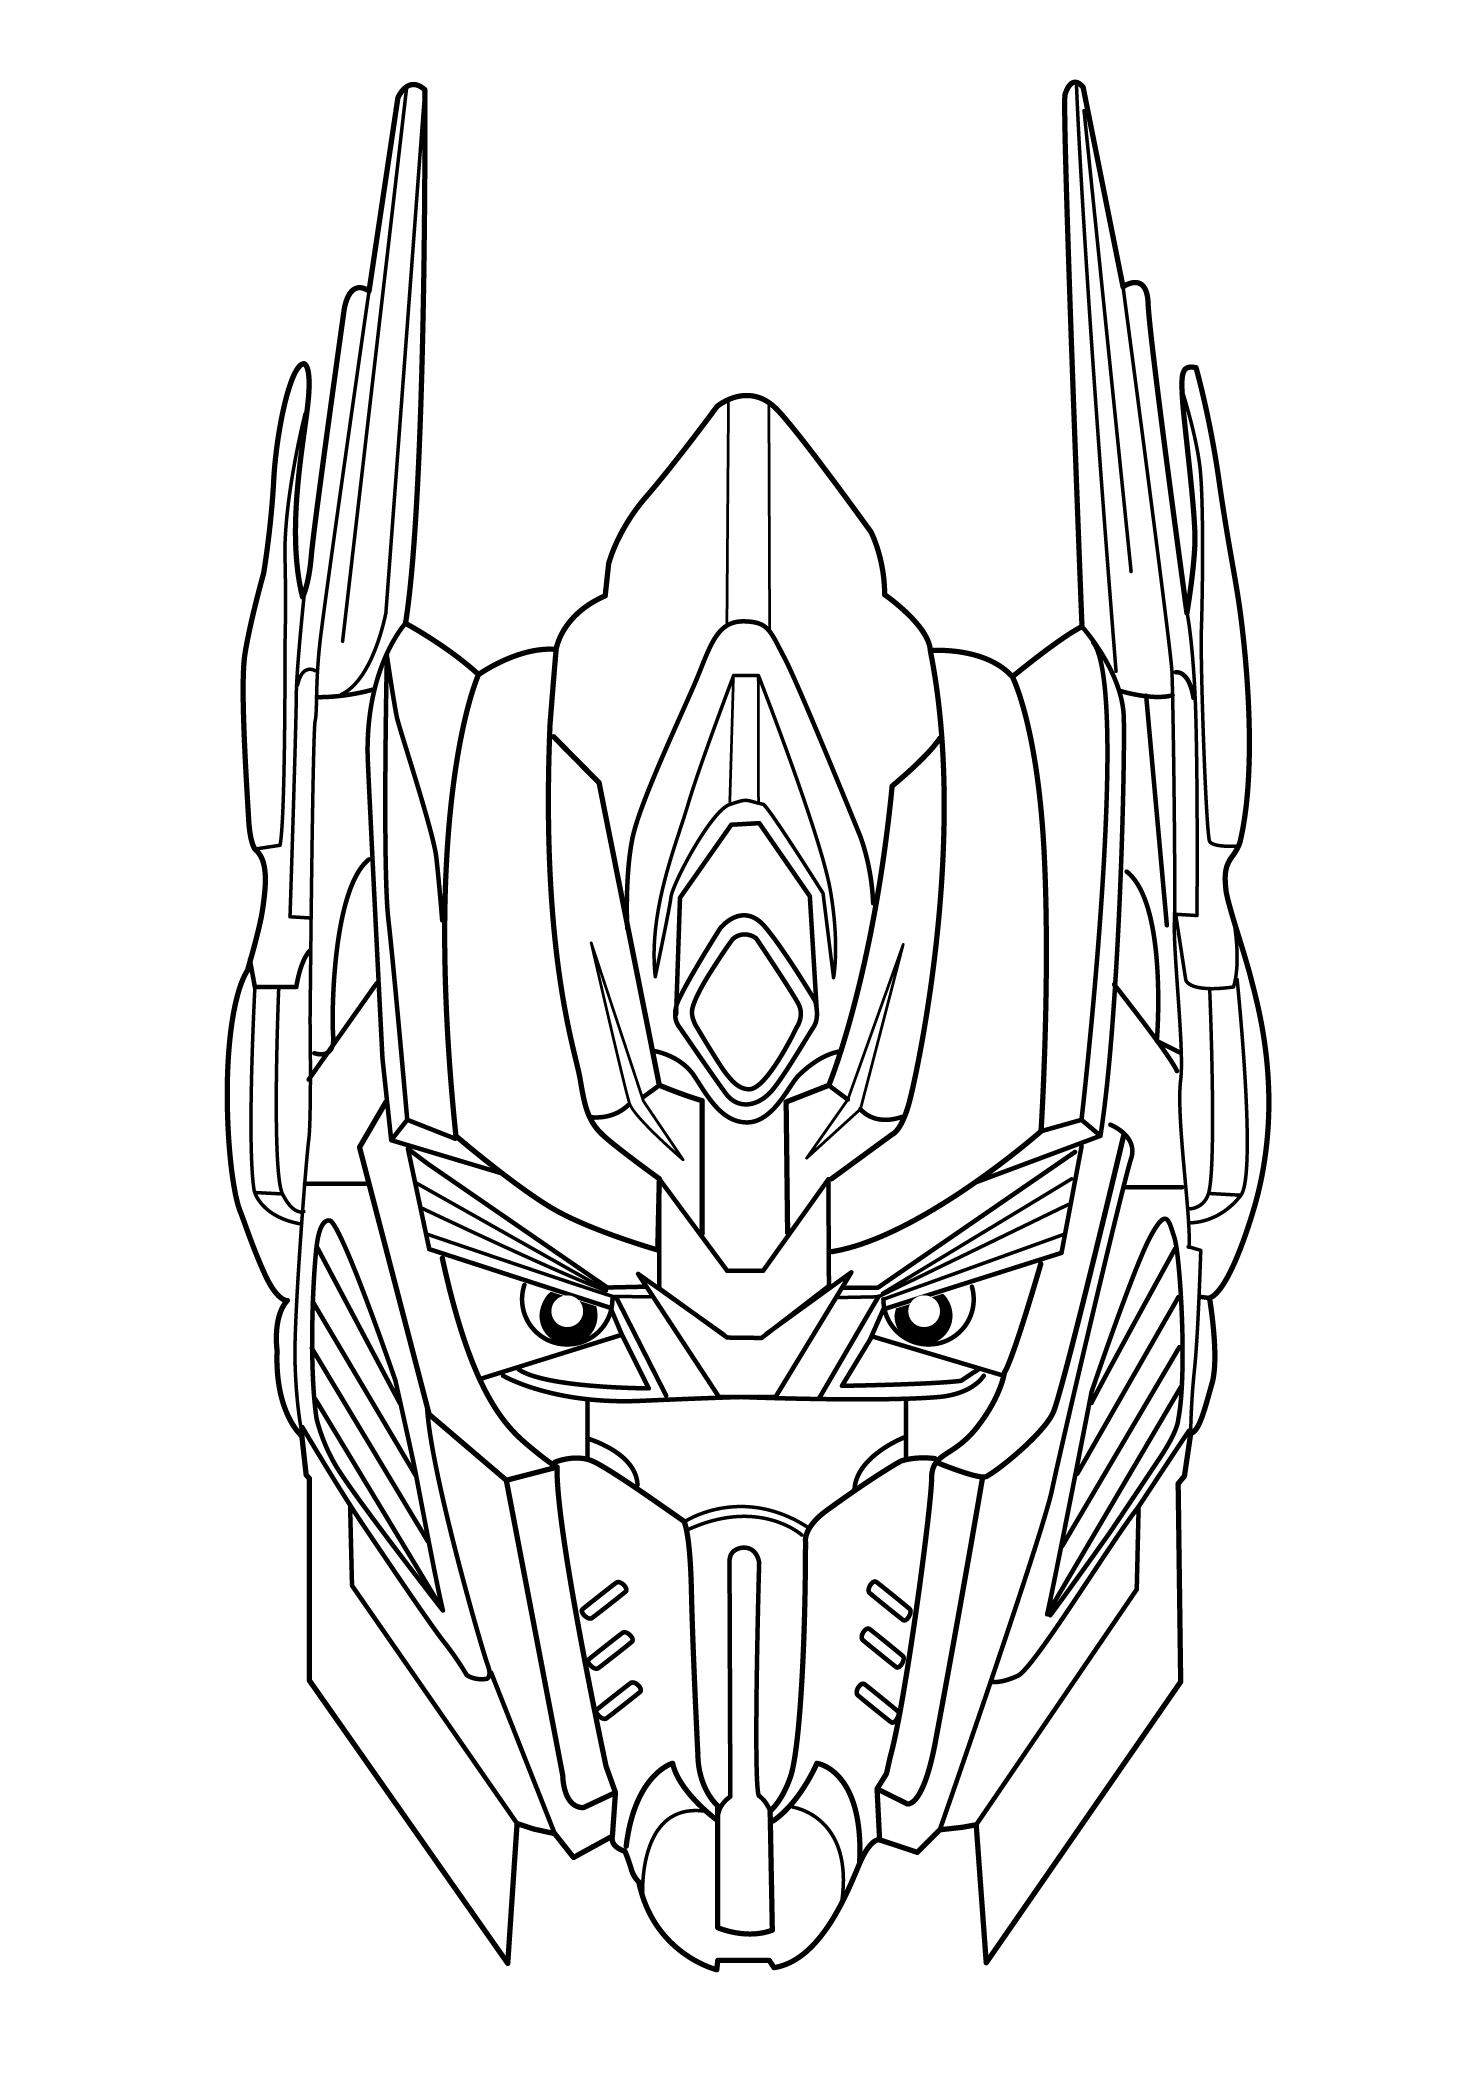 coloring pages transformers super heros coloring pages momjunction coloring pages transformers